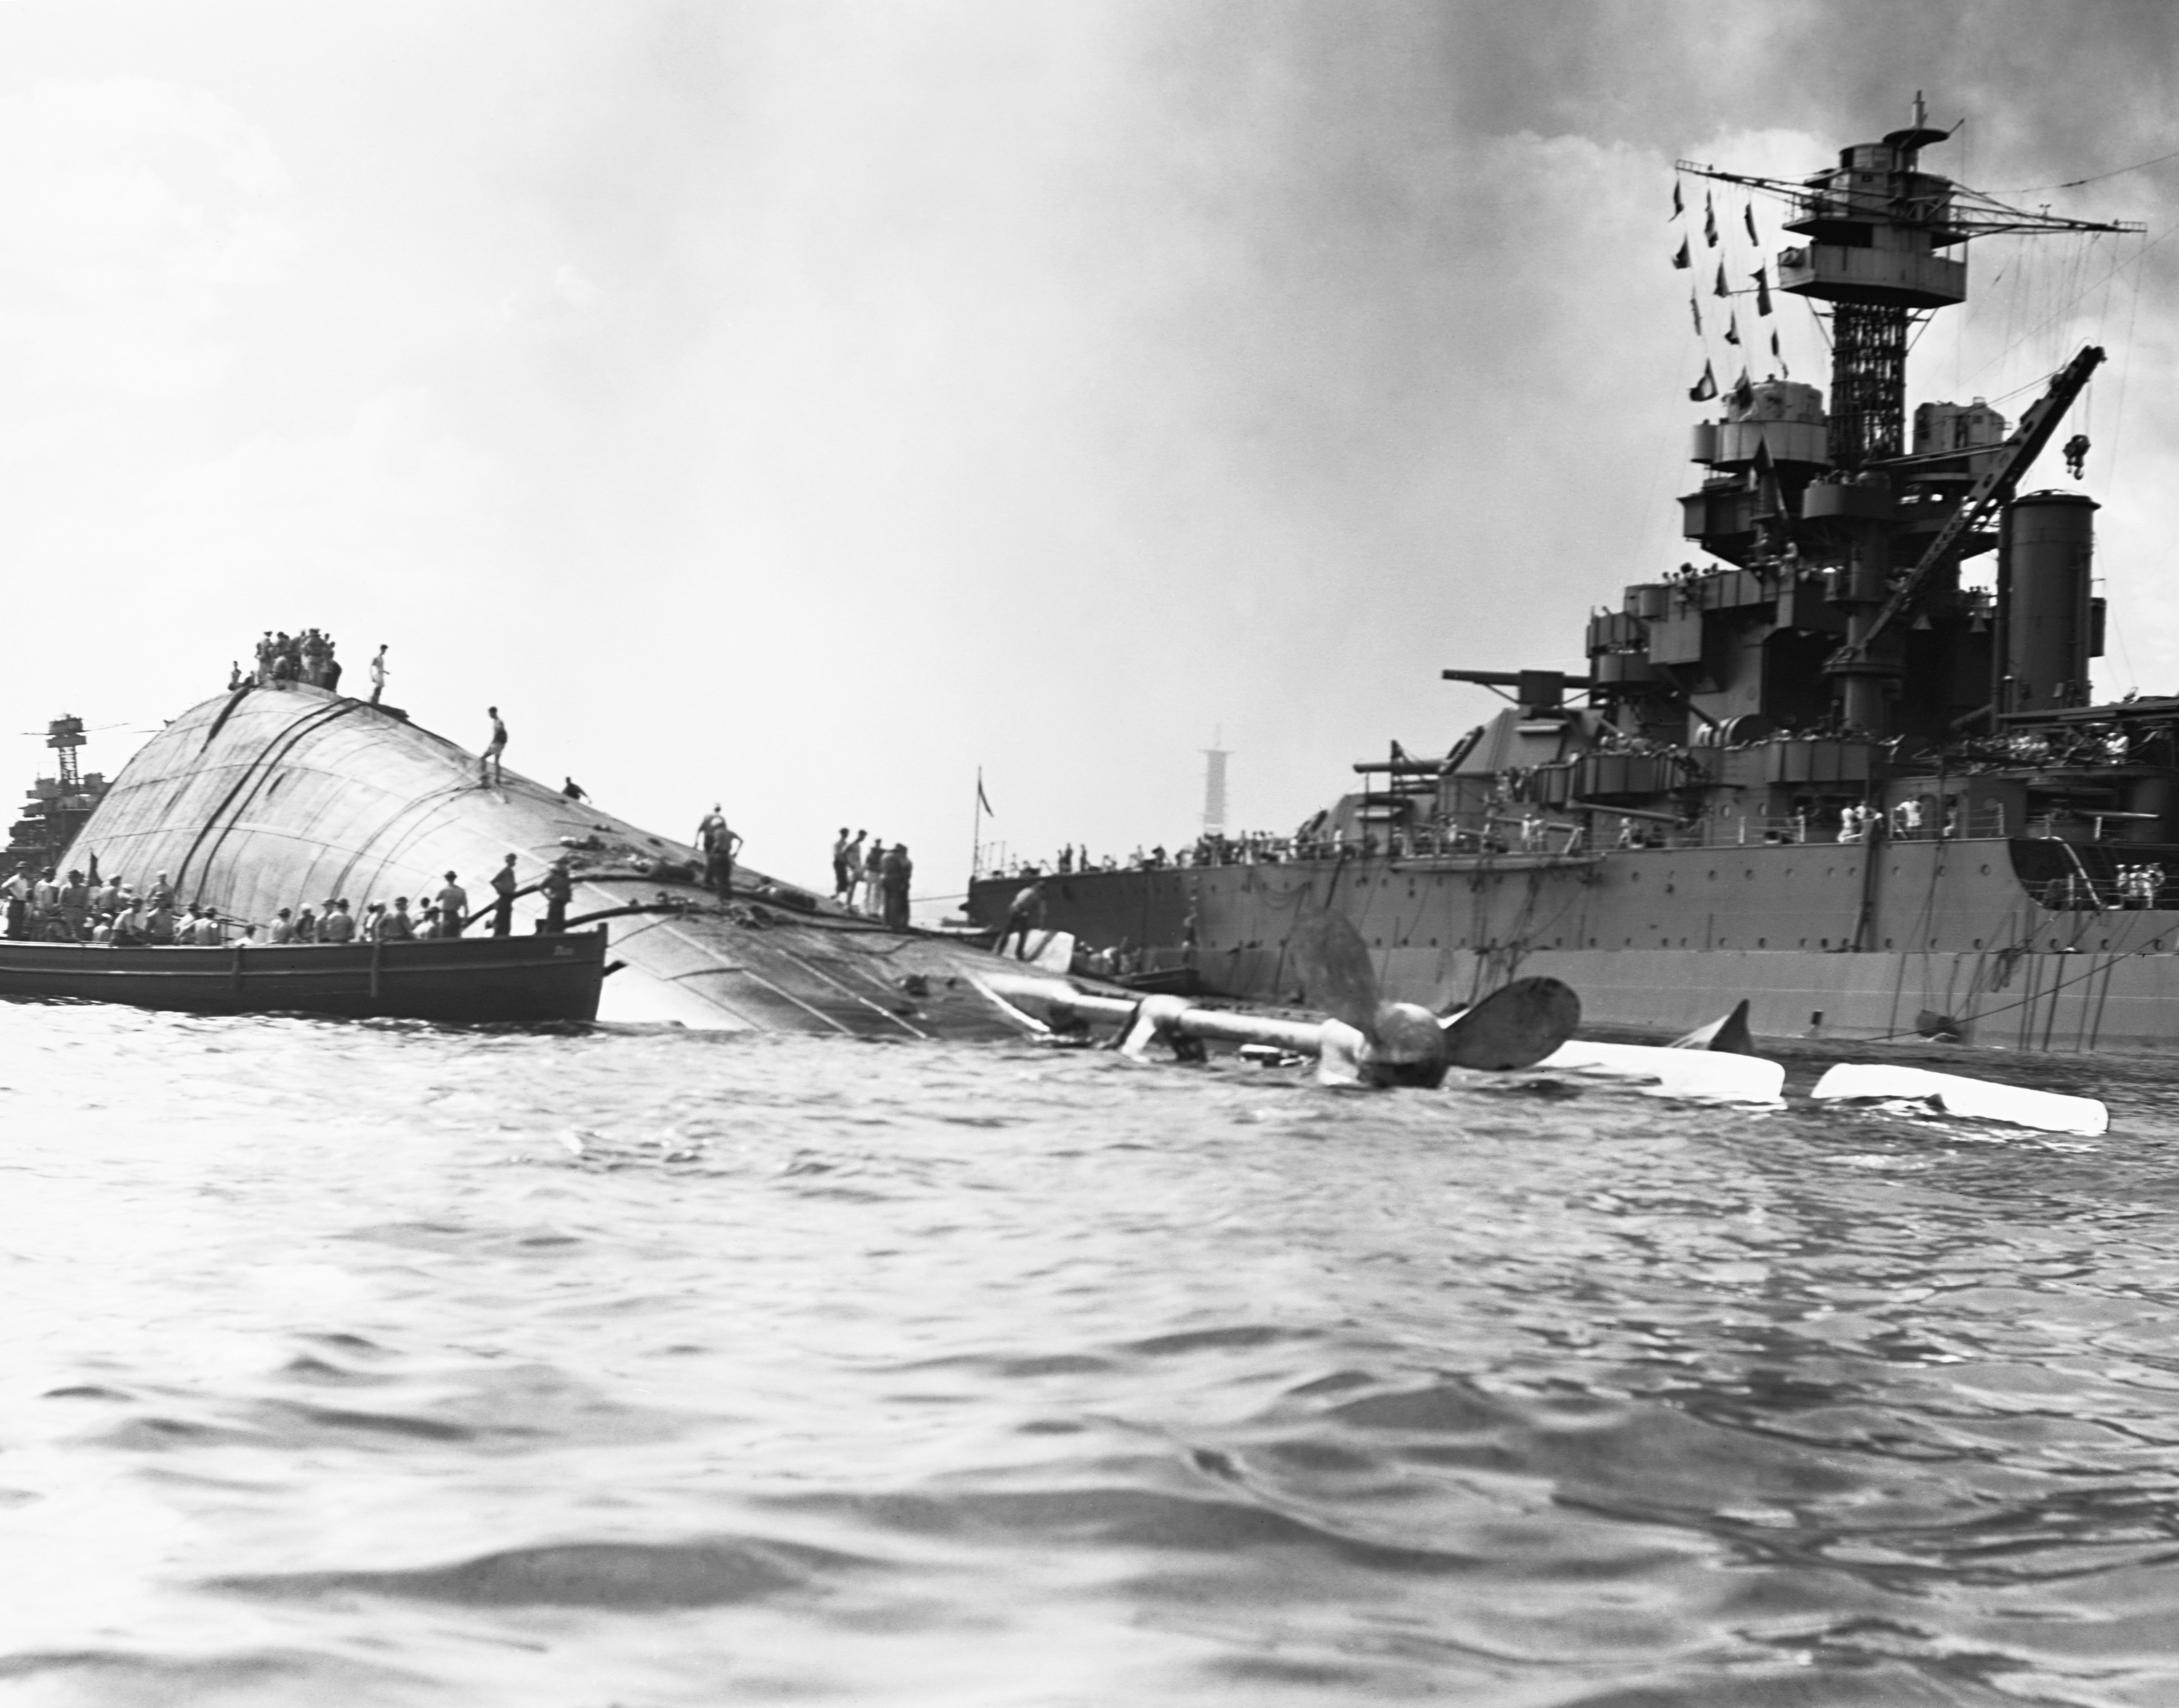 an introduction to the history of pearl harbor in 1941 The 1941 attack on pearl harbor history introduction history is the study of events that during the pacific war caused by.